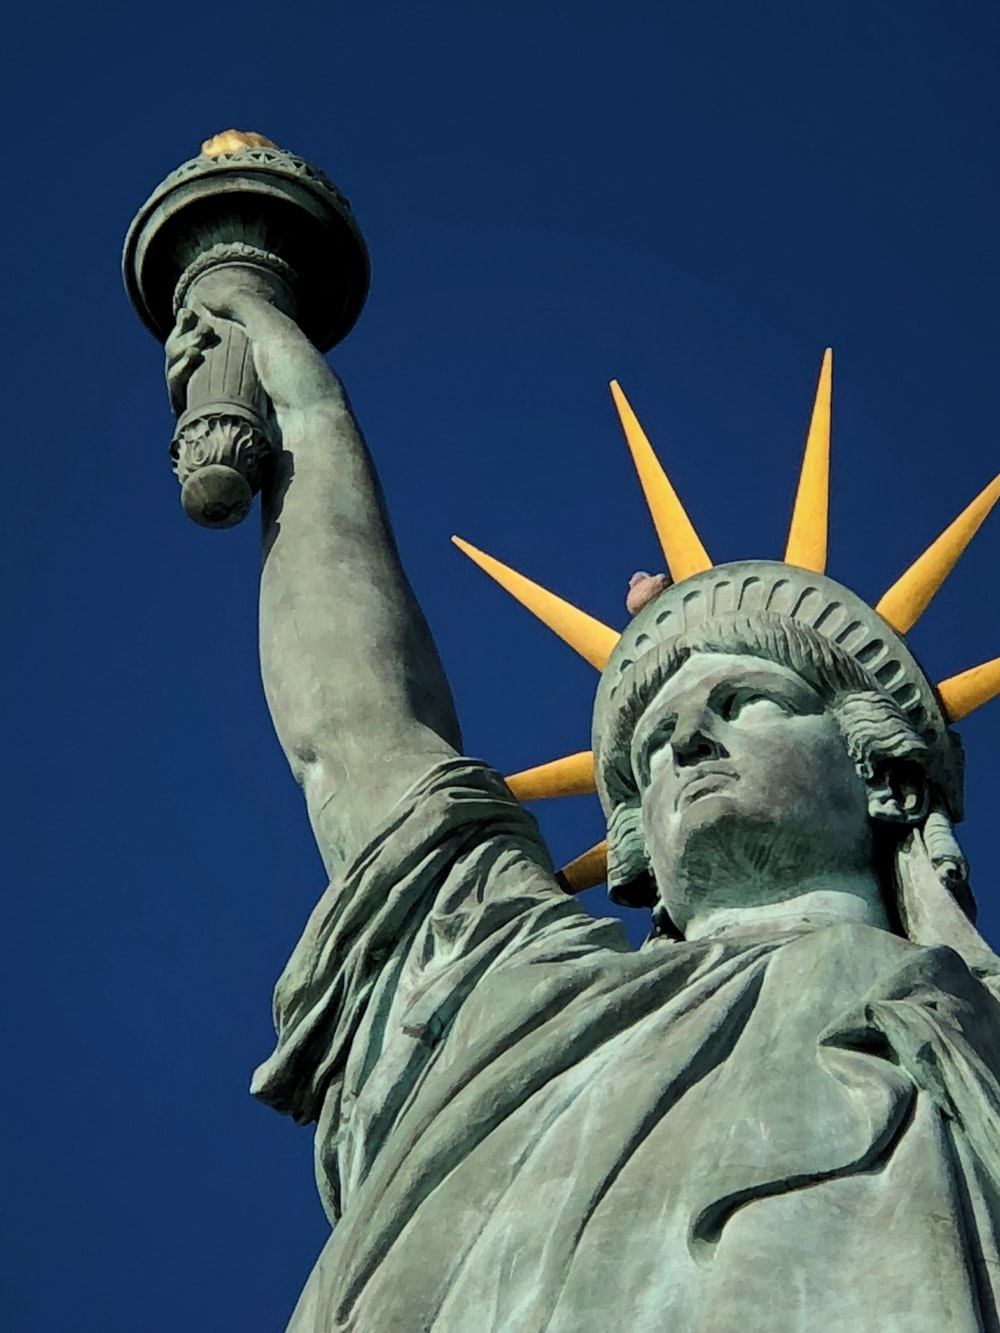 Statue of Liberty under blue sky